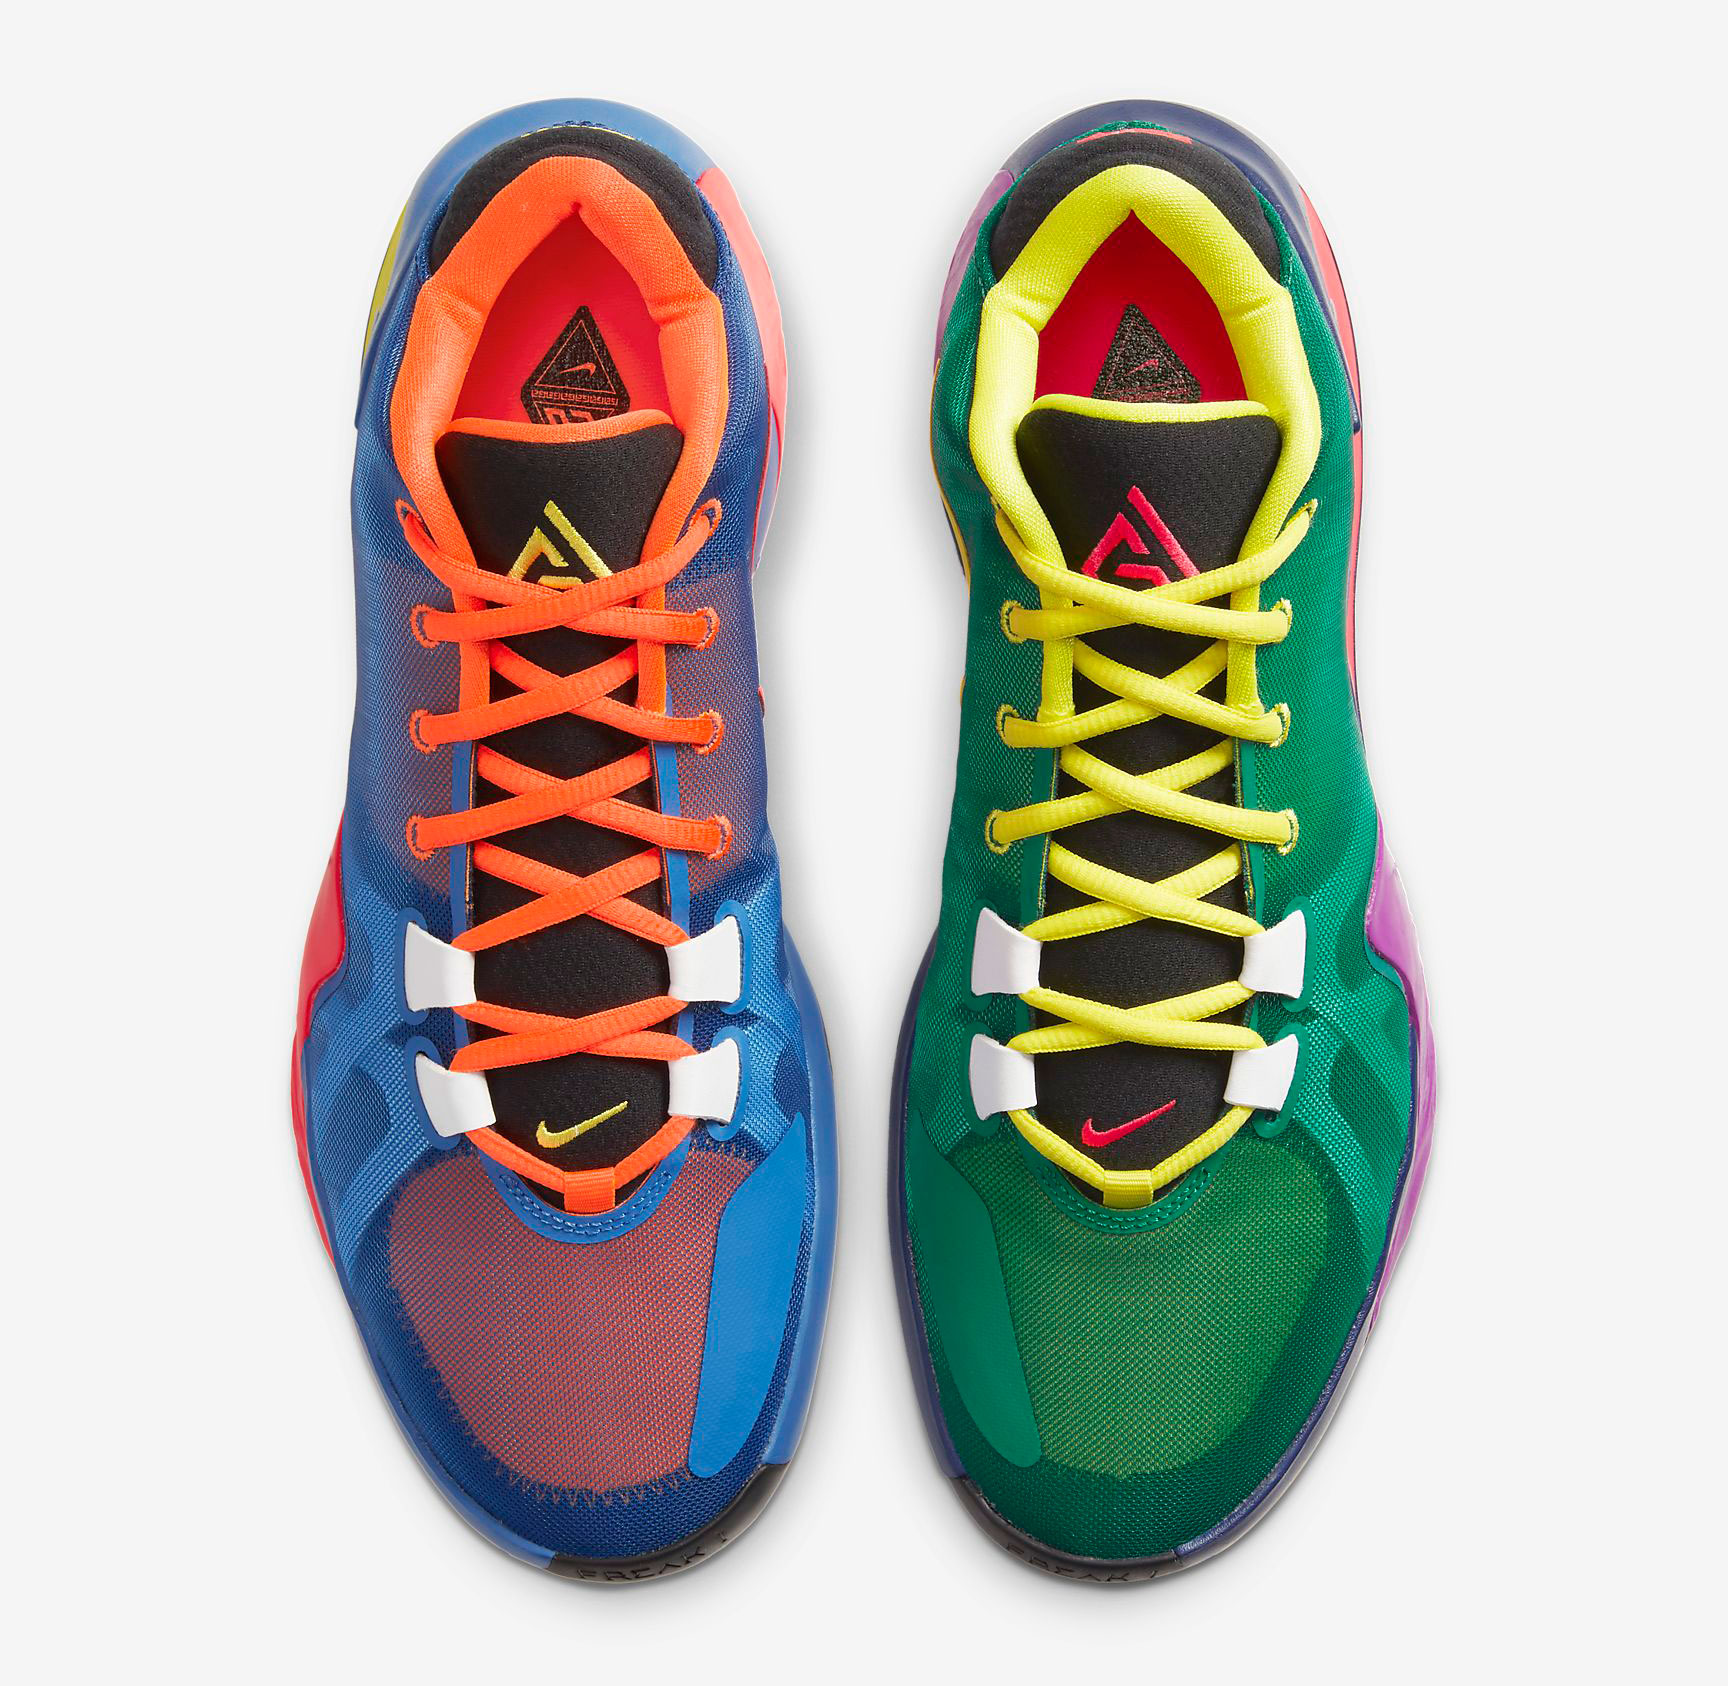 nike-zoom-freak-1-multi-color-roots-release-date-4